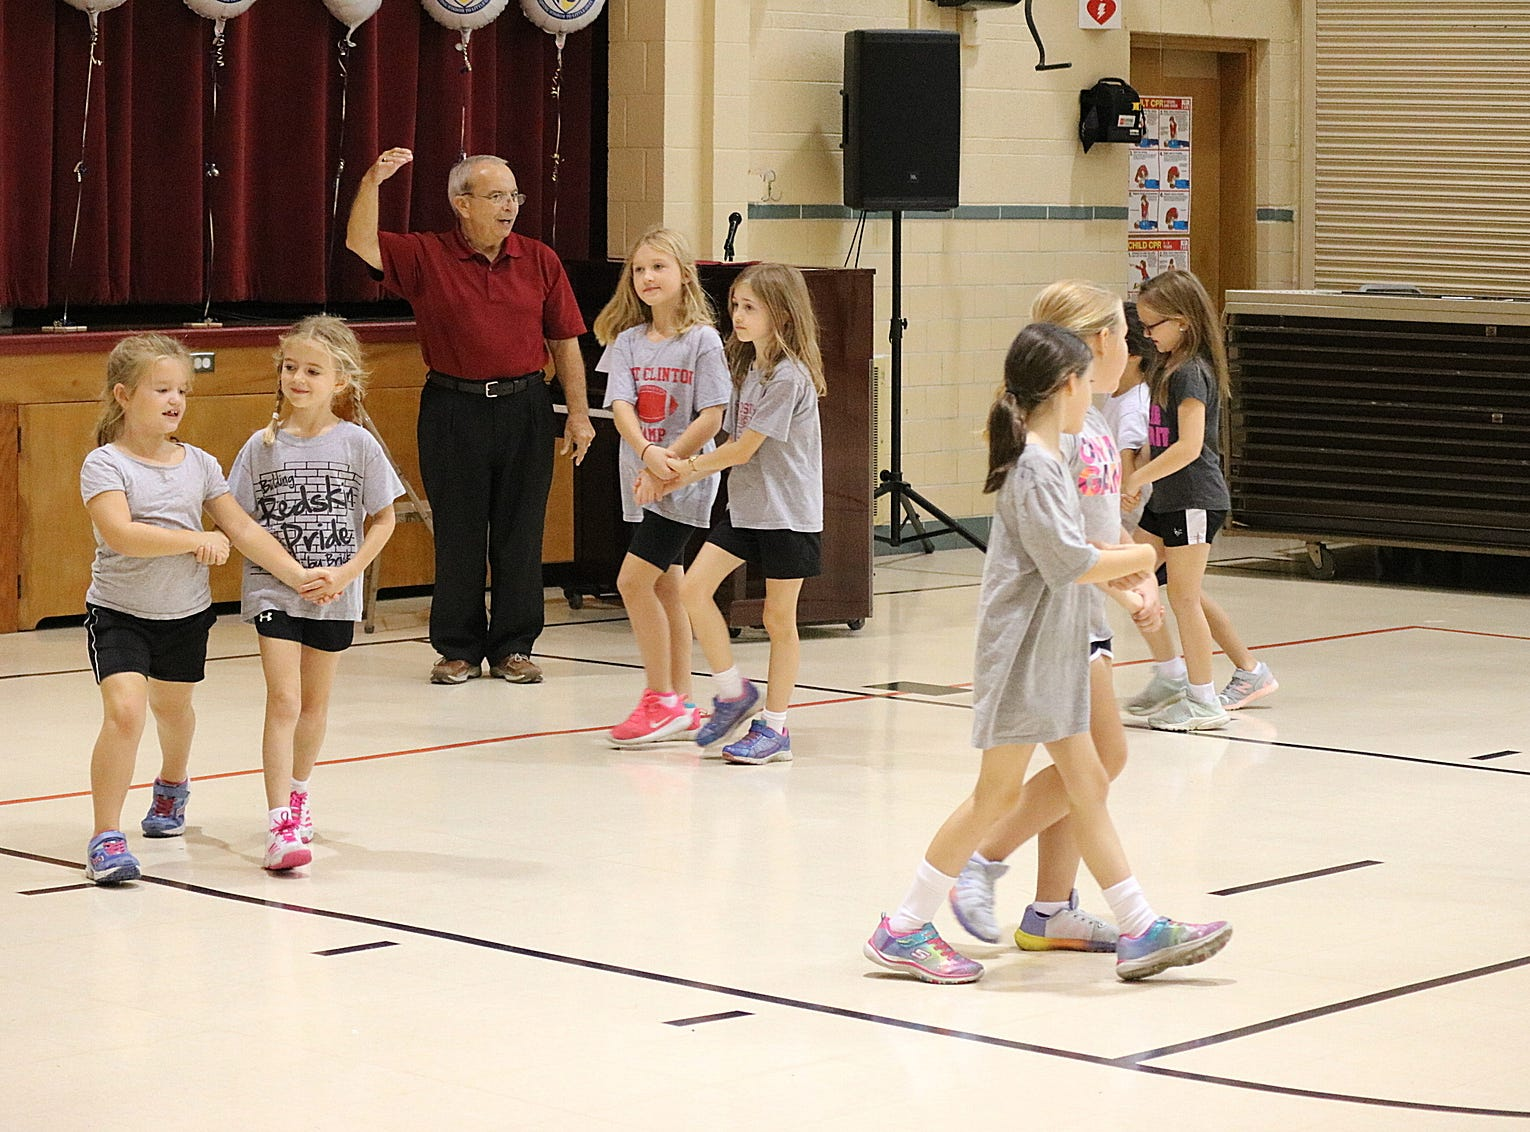 Second grade students at Immaculate Conception School practice the promenade with Greg Fox in preparation for the Boots and Buckles Pig Roast and Square Dance  on Oct. 20.